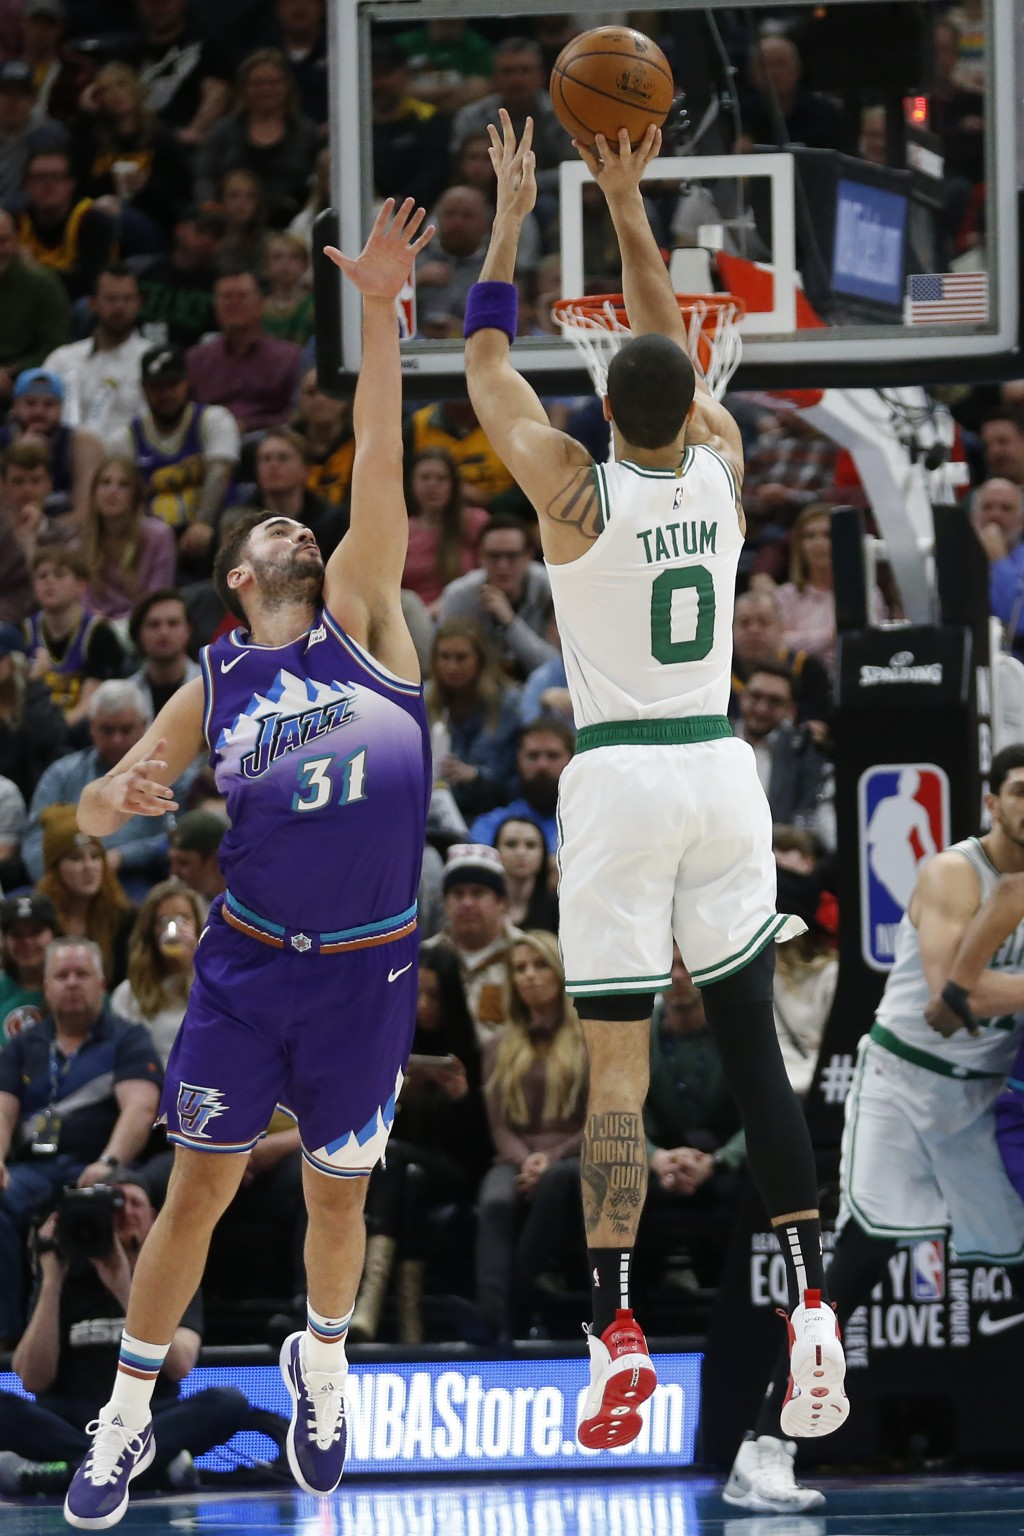 Boston Celtics forward Jayson Tatum (0) shoots as Utah Jazz forward Georges Niang (31) defends during the first half of an NBA basketball game Wednesd...